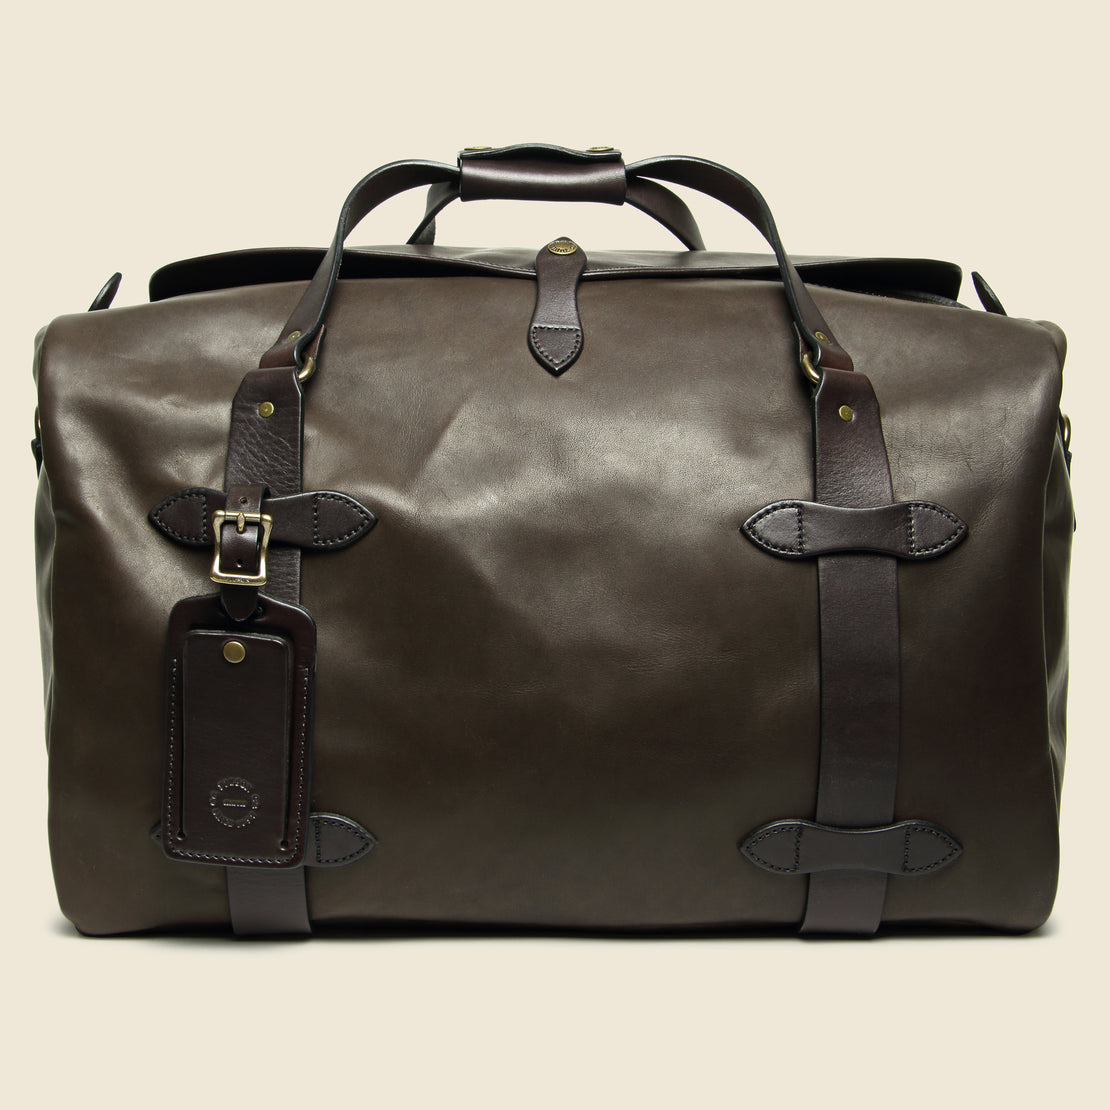 Filson Weatherproof Medium Duffle Bag - Sierra Brown